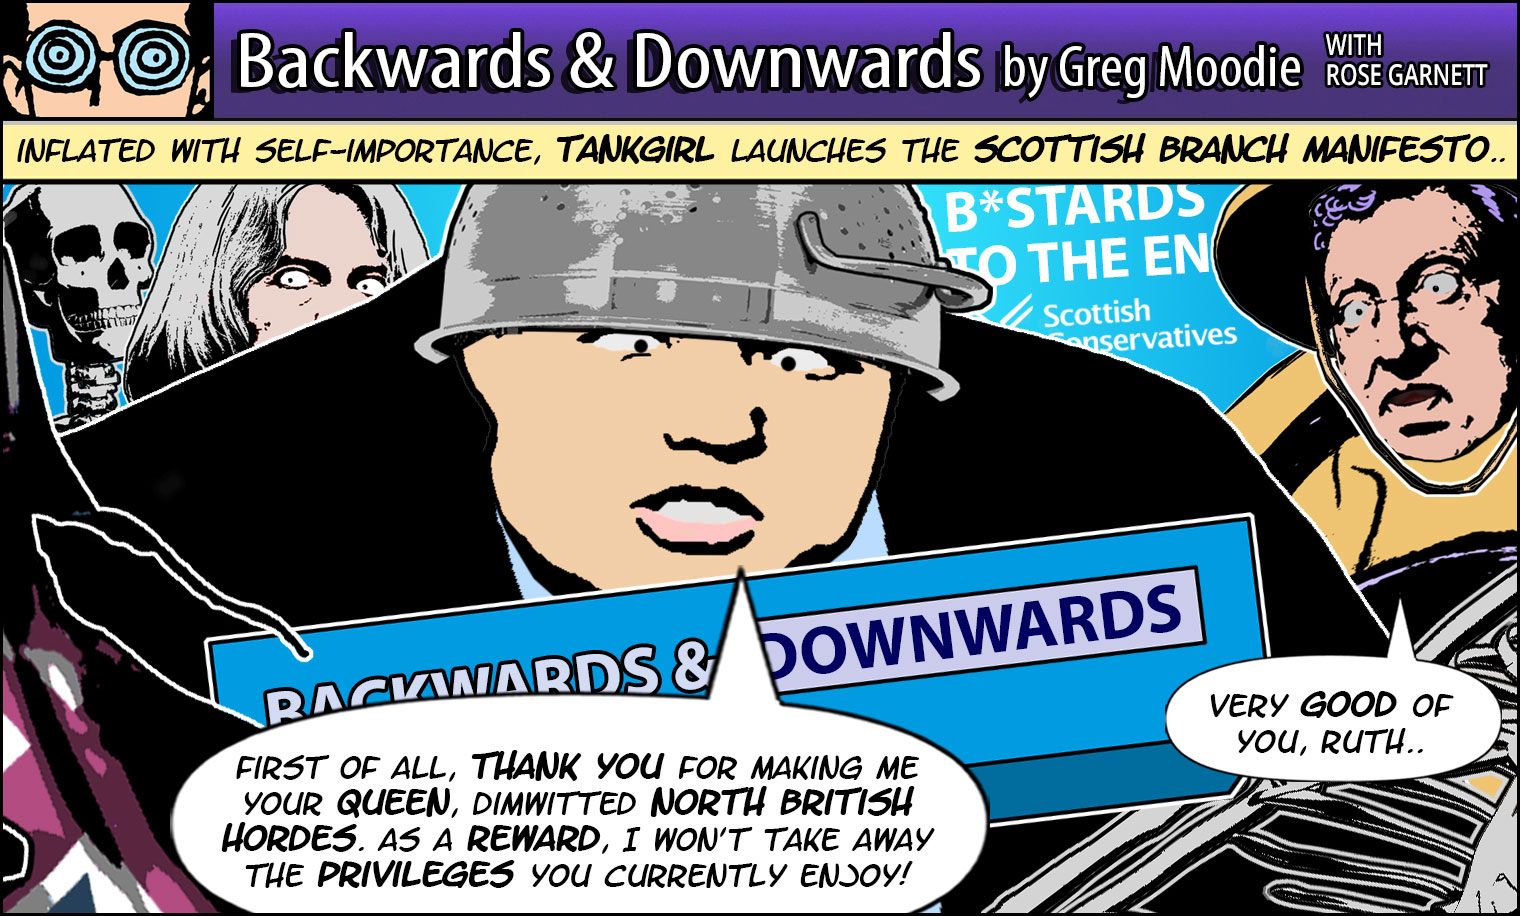 Backwards & Downwards